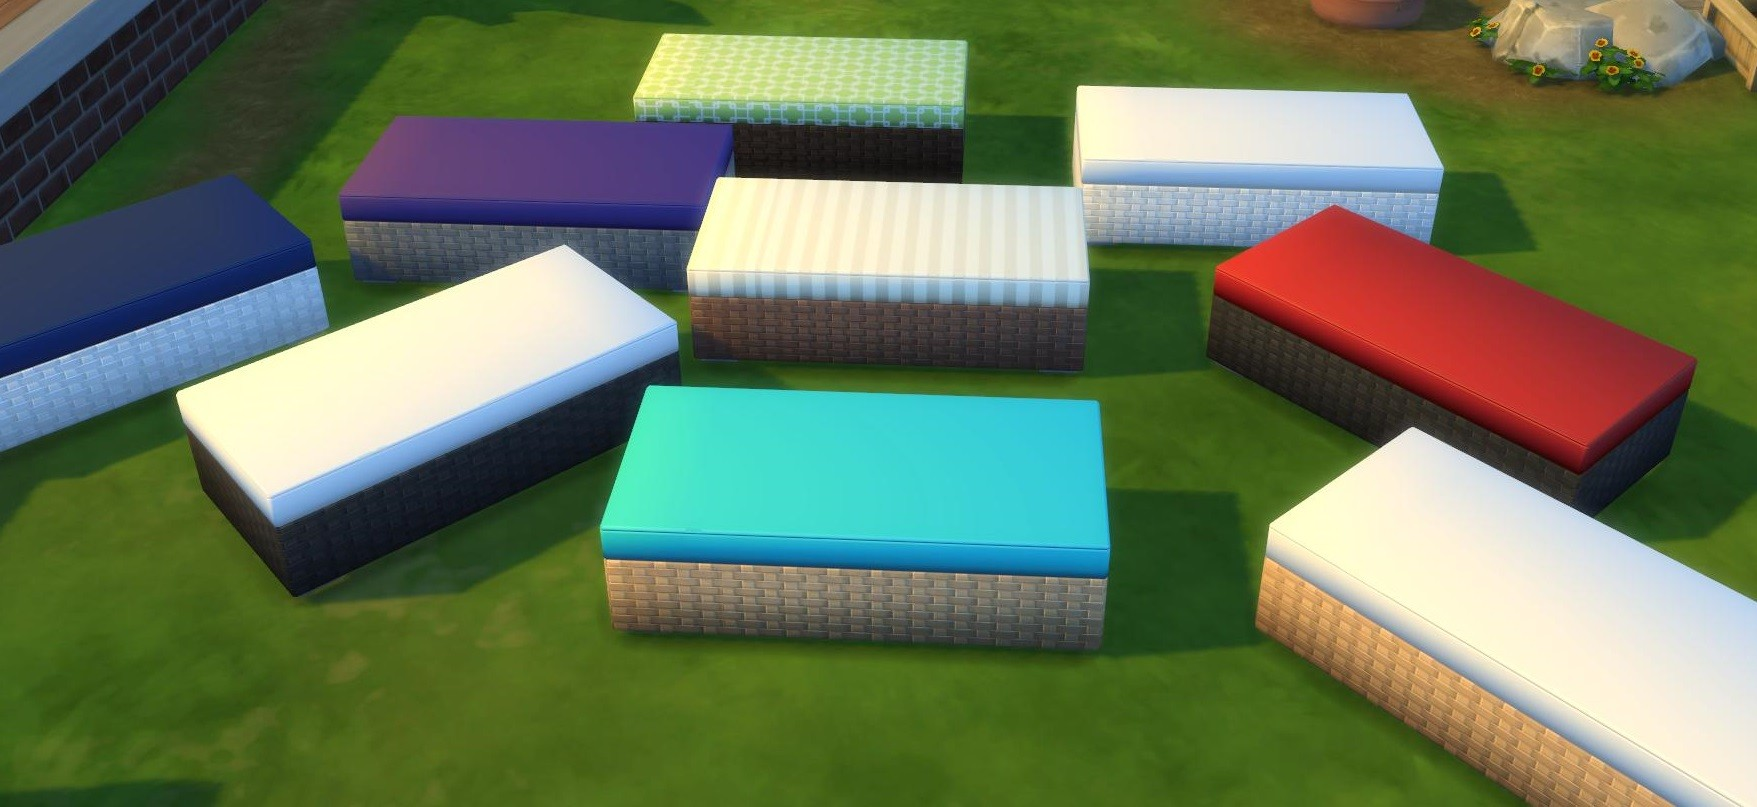 Sims 4 Ambiance Patio Meubles 06 Next Stage